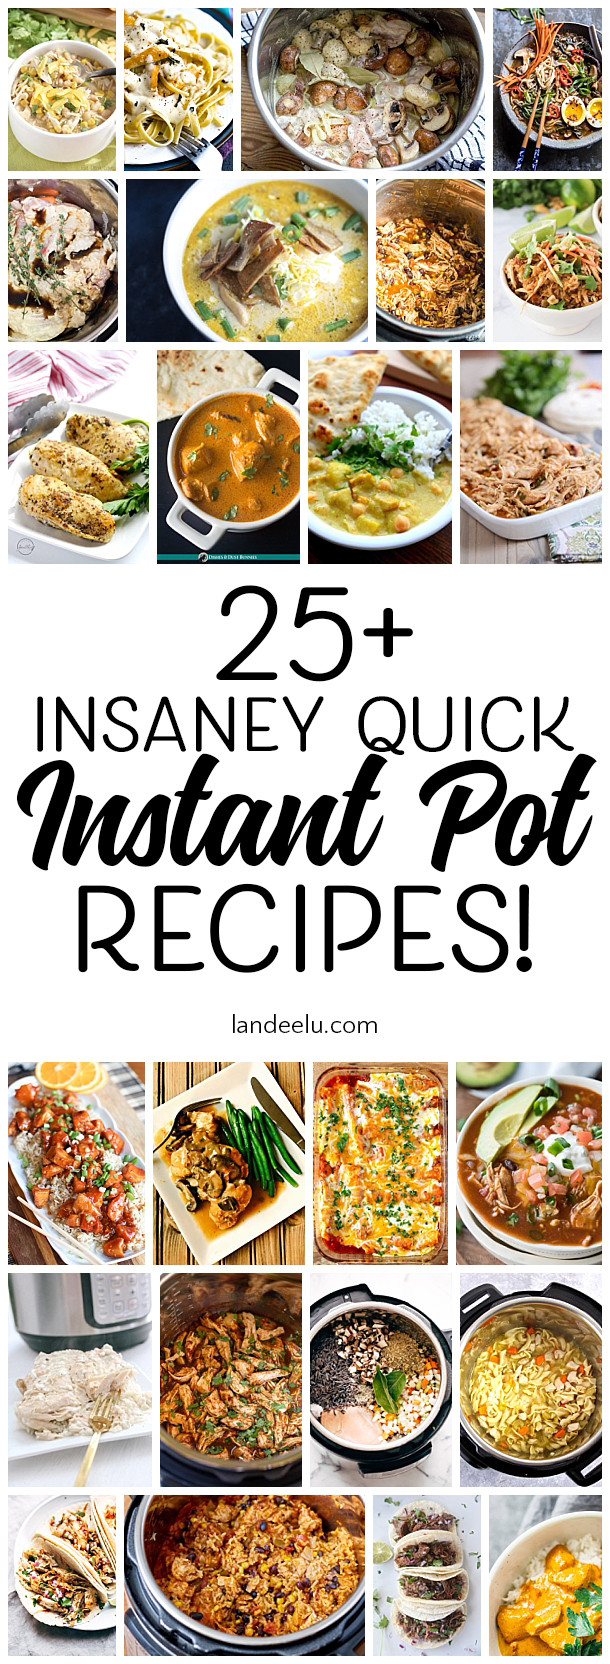 Quick Instant Pot Recipes  25 Insanely Quick Instant Pot Recipes landeelu